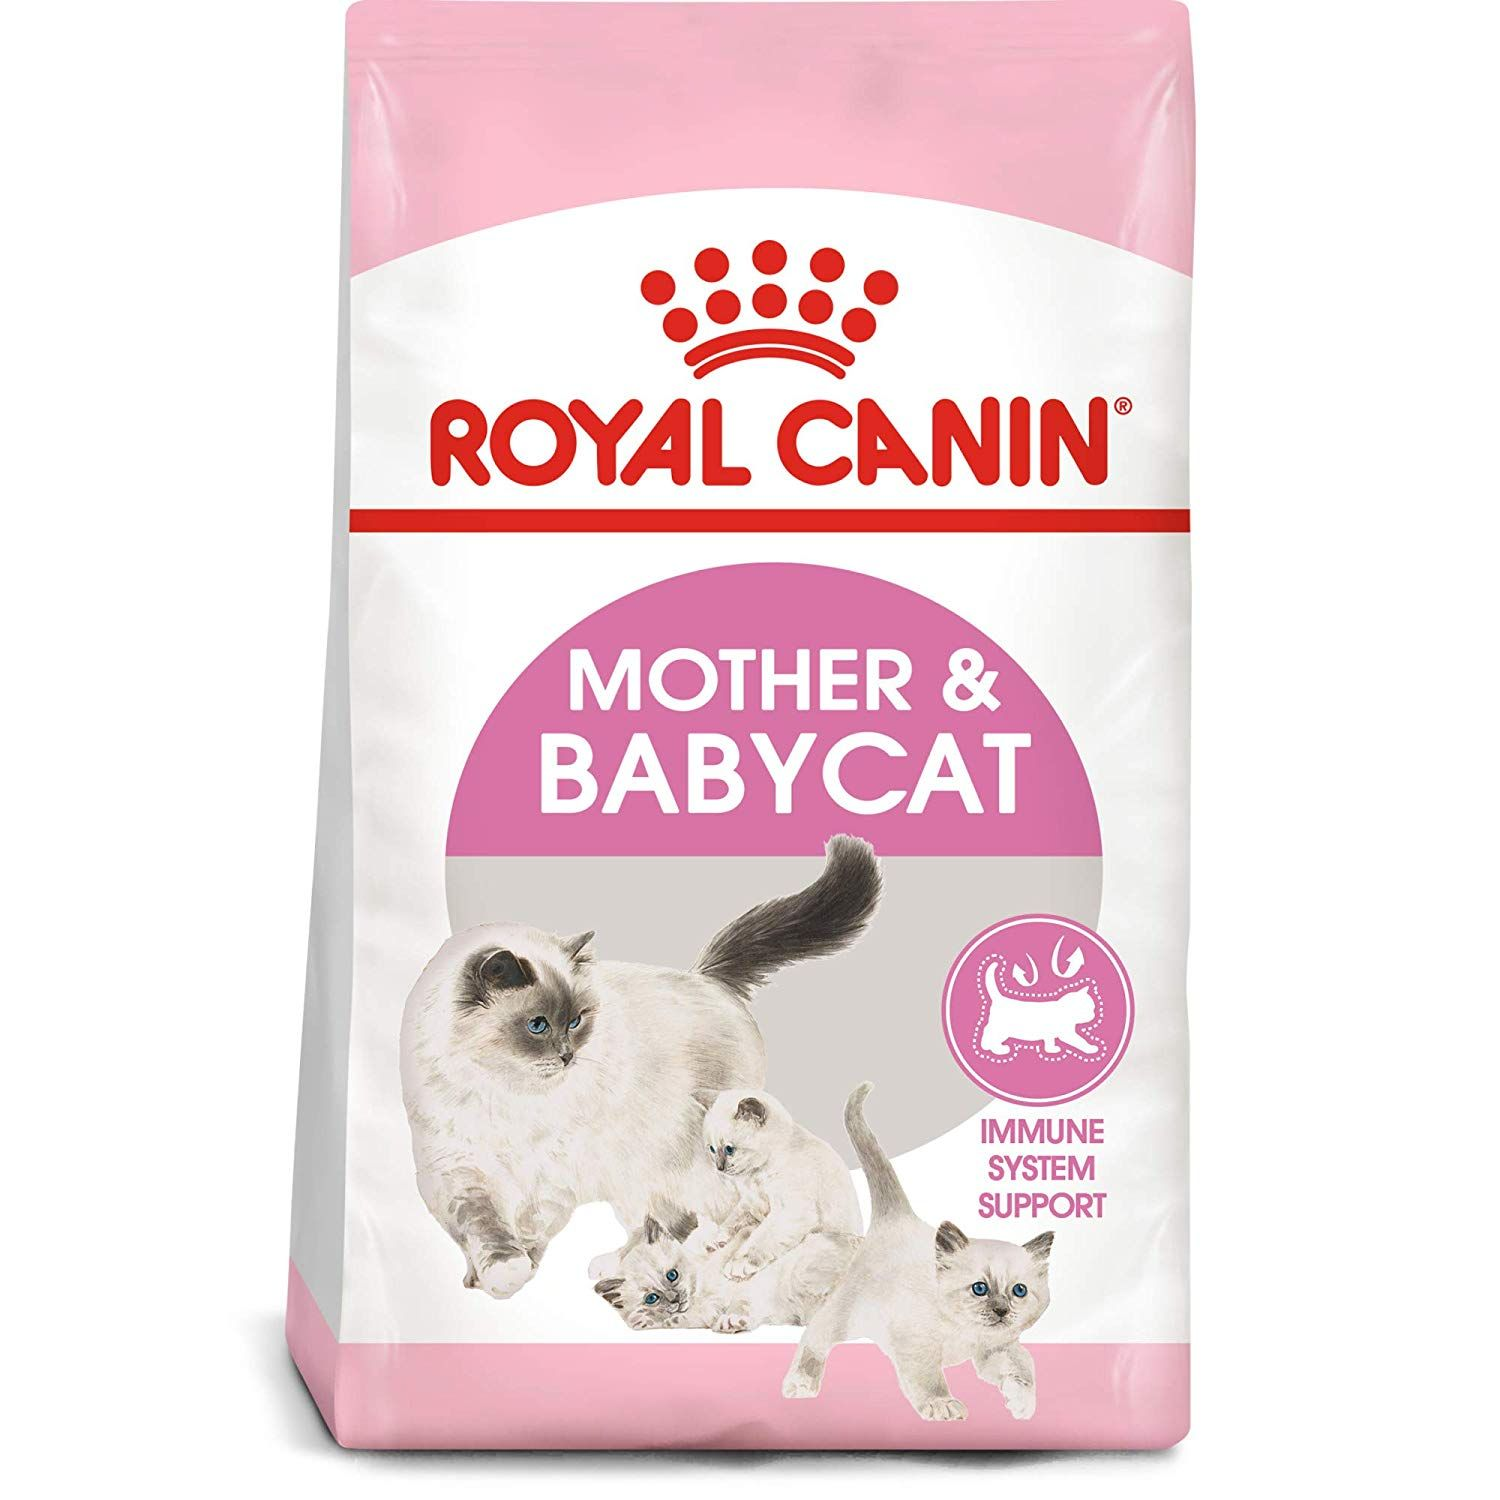 Royal Canin Feline Health Nutrition Mother And Babycat Dry Cat Food Do Hope You Do Love The Image This Is An Af Feline Health Dry Cat Food Newborn Kittens